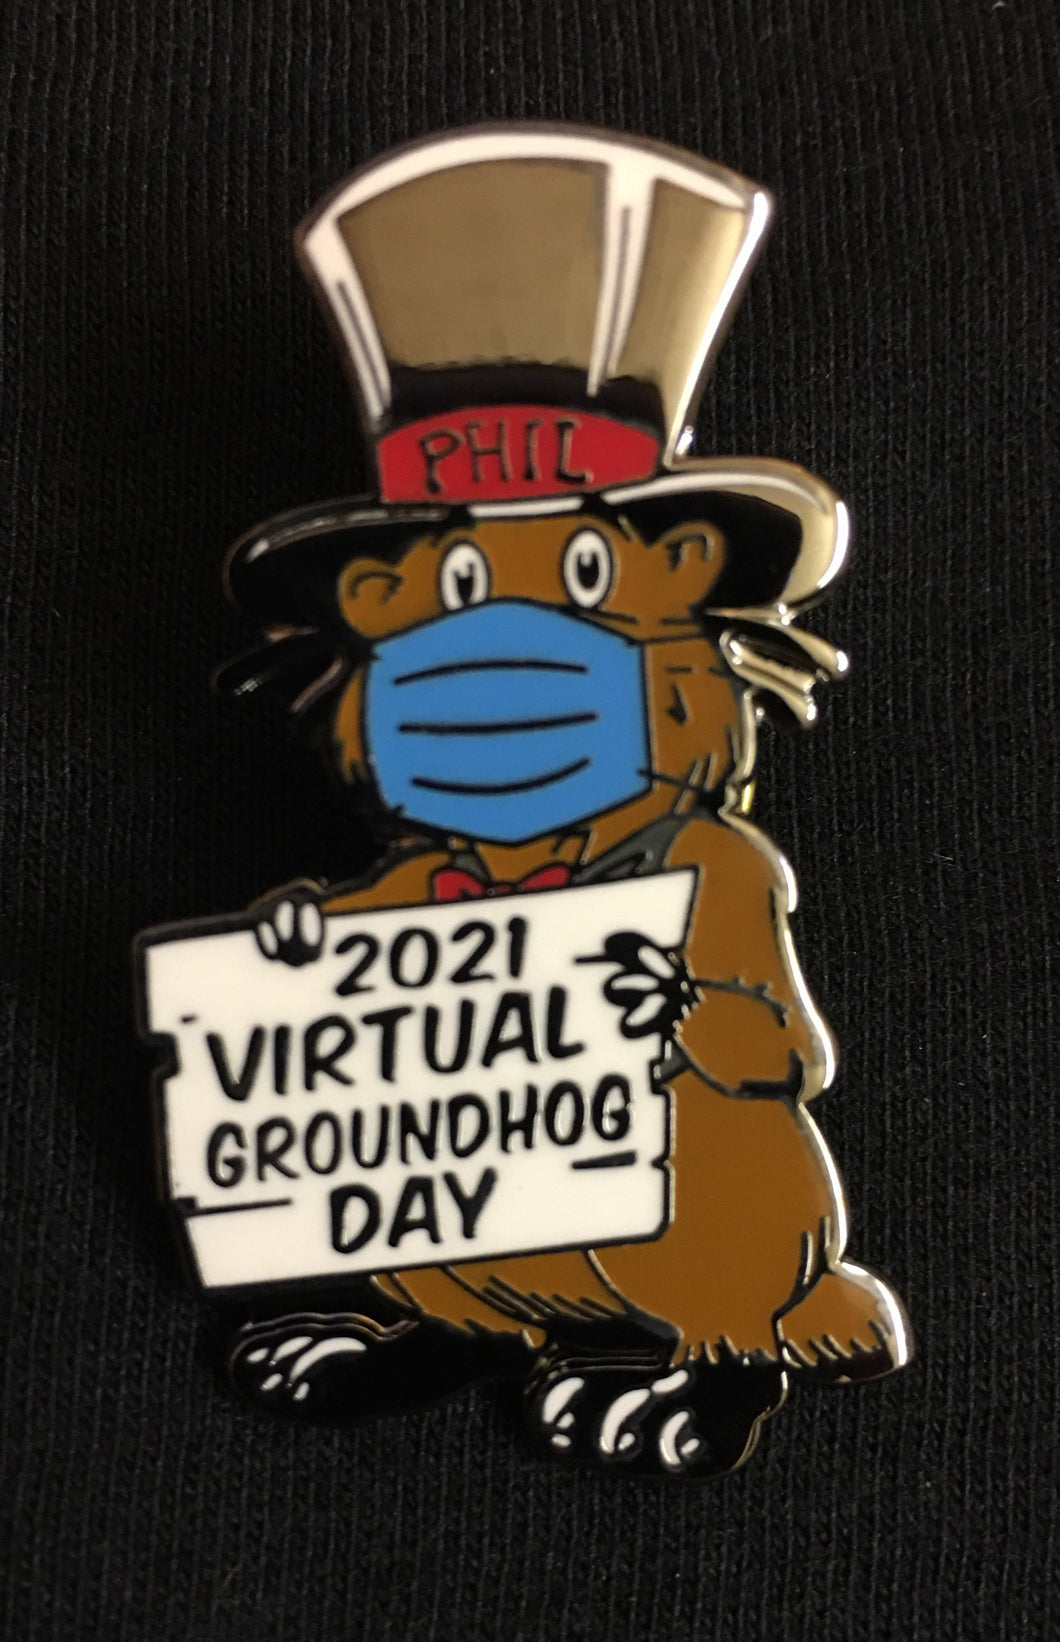 Lapel Groundhog Day 2021 Pin